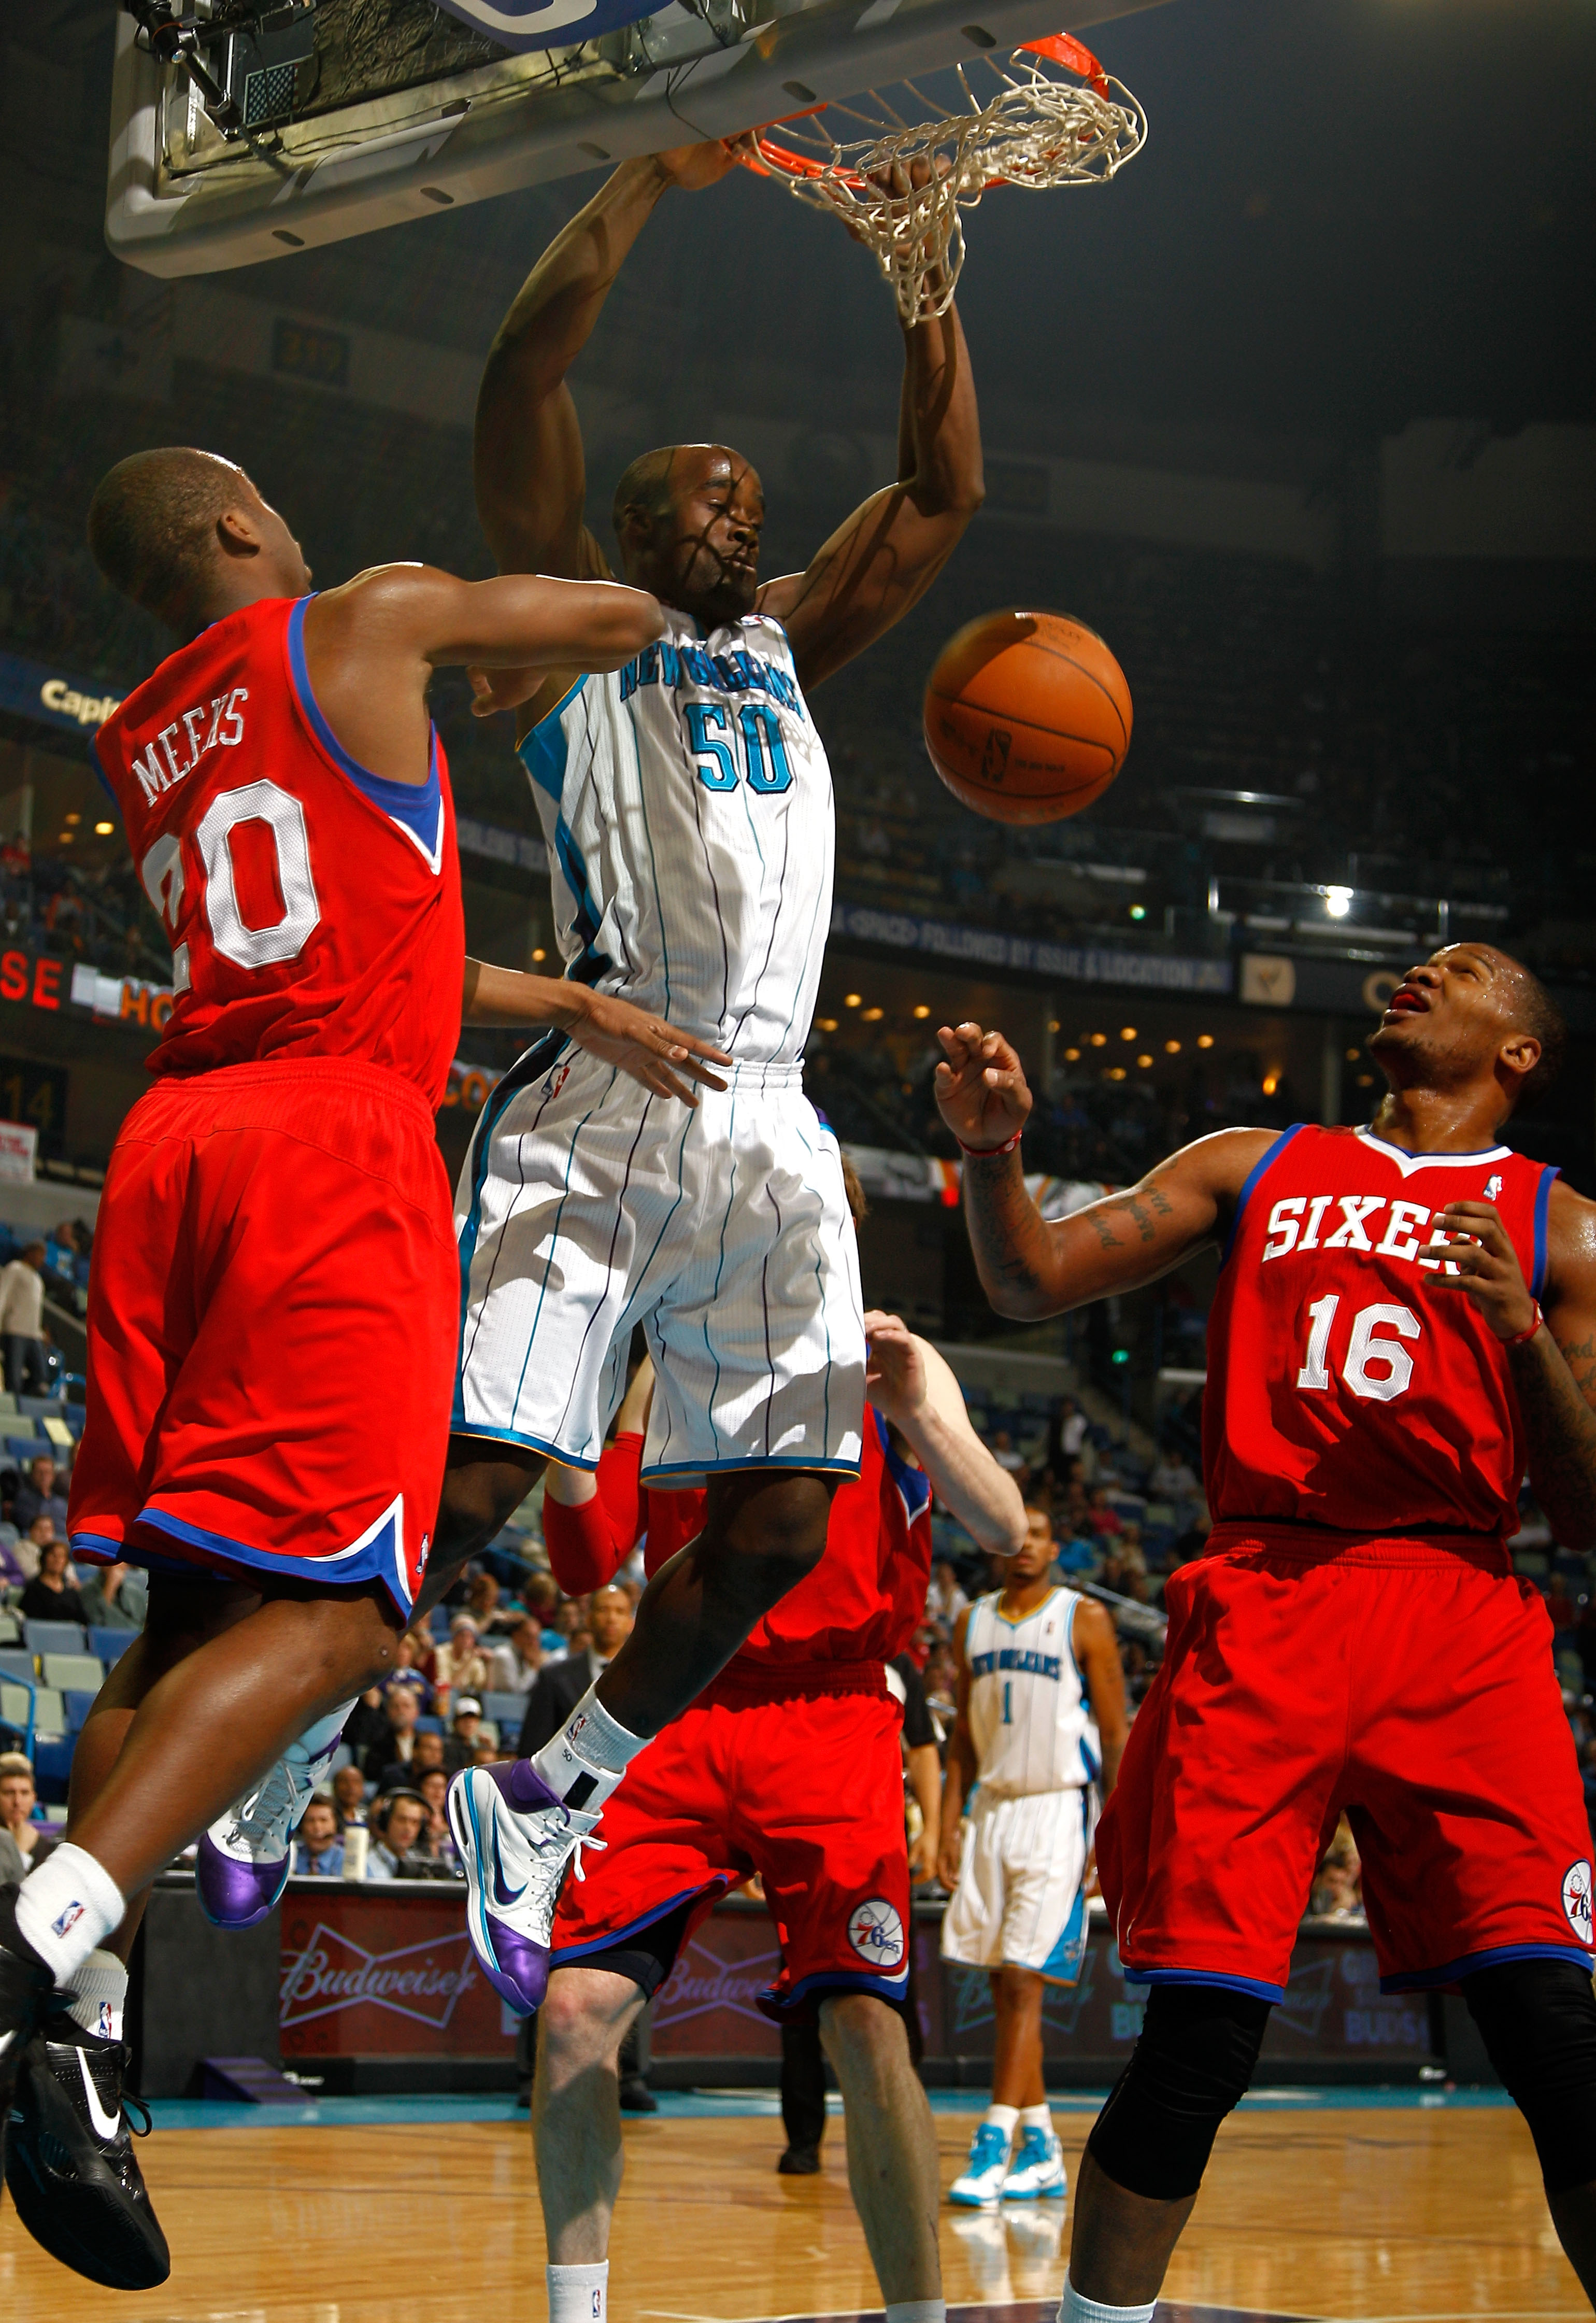 NEW ORLEANS, LA - JANUARY 03:  Emeka Okafor #50 of the New Orleans Hornets dunks the ball between Jodie Meeks #20 and Marreese Speights #16 of the Philadelphia 76ers in the first half at New Orleans Arena on January 3, 2011 in New Orleans, Louisiana. NOTE